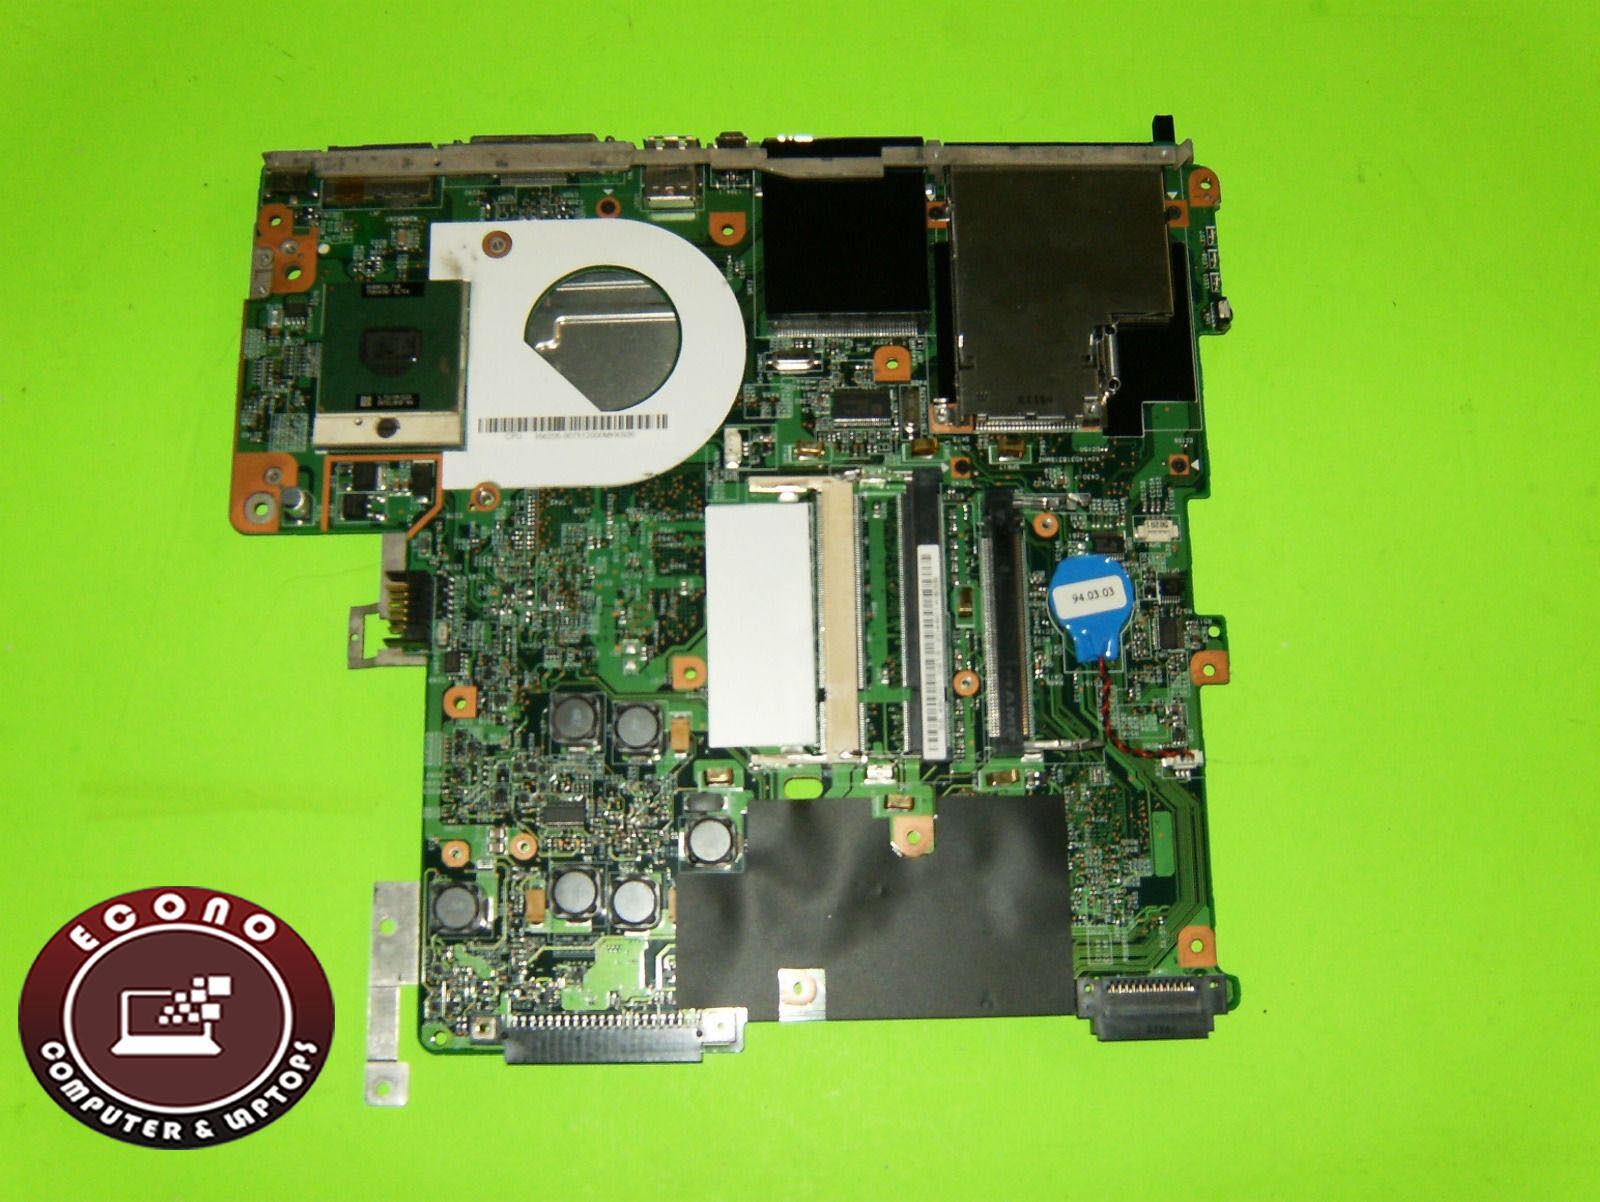 Primary image for HP Pavilion DV4040US DV4000 Genuine Intel Laptop Motherboard 383463-001 (AS IS)